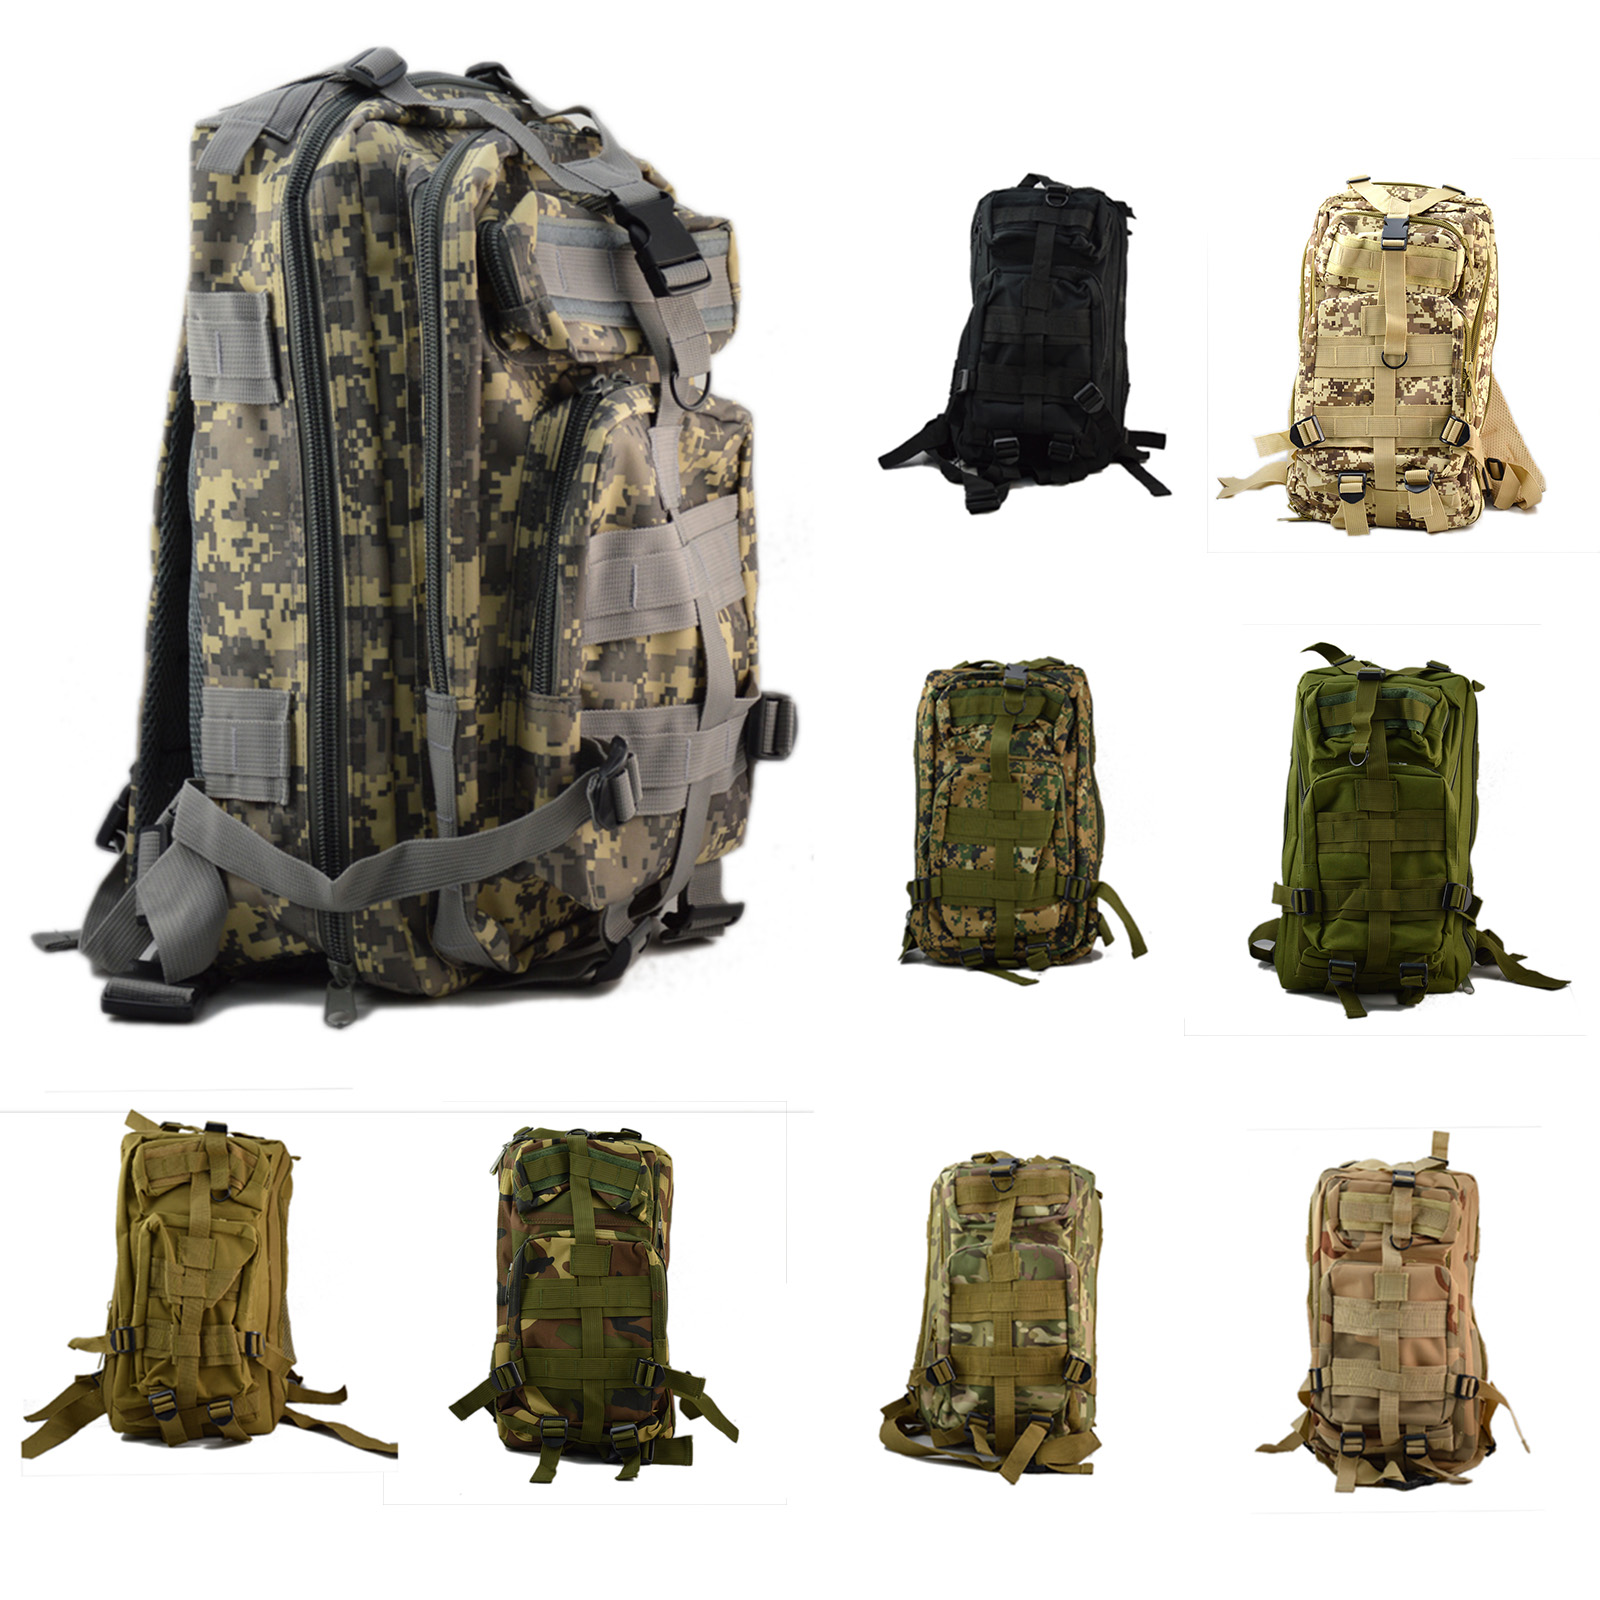 e7d44a4eb9f Buy combat backpack and get free shipping on AliExpress.com